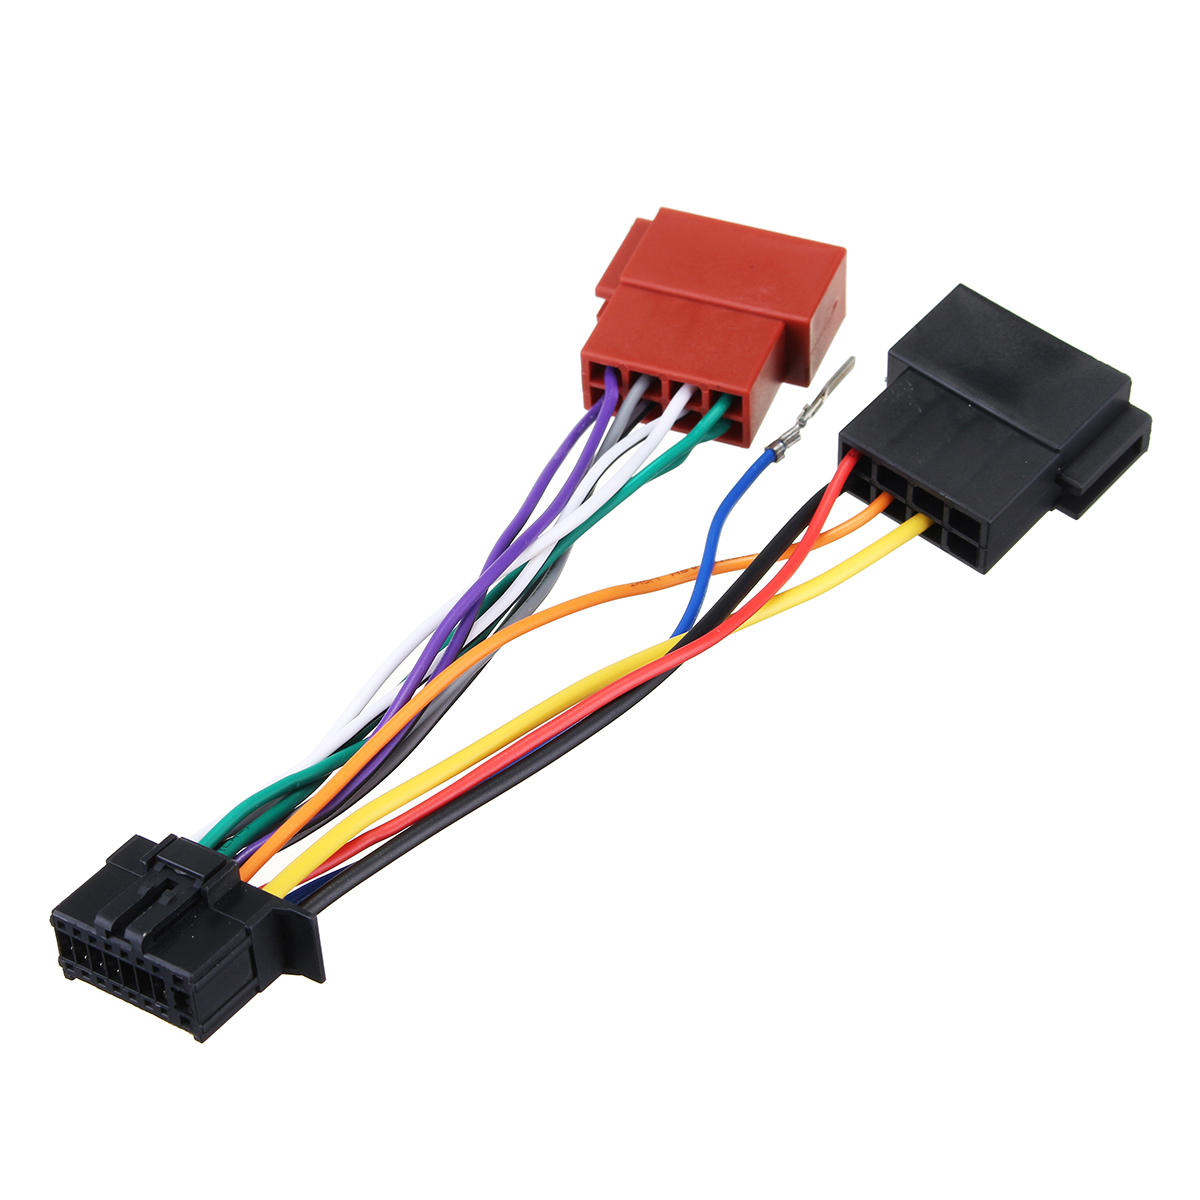 hight resolution of car stereo radio player iso wiring harness connector 16pin for pioneer 2003 on c264d072 24f6 4474 8286 3fb67a1741dc